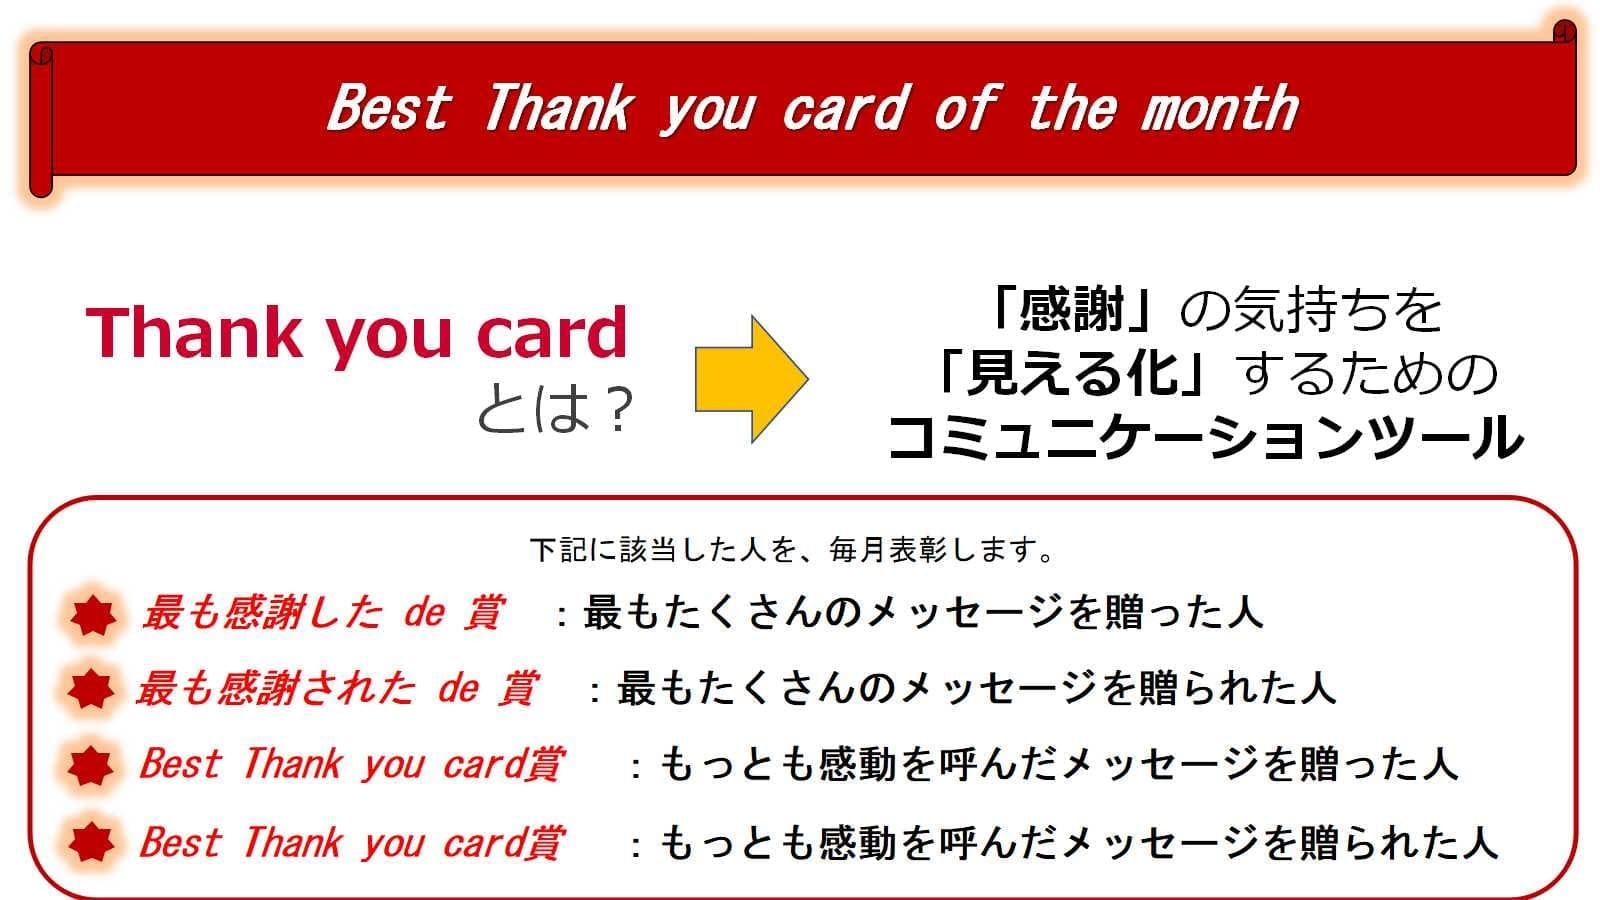 Best Thank you card of the month掲示